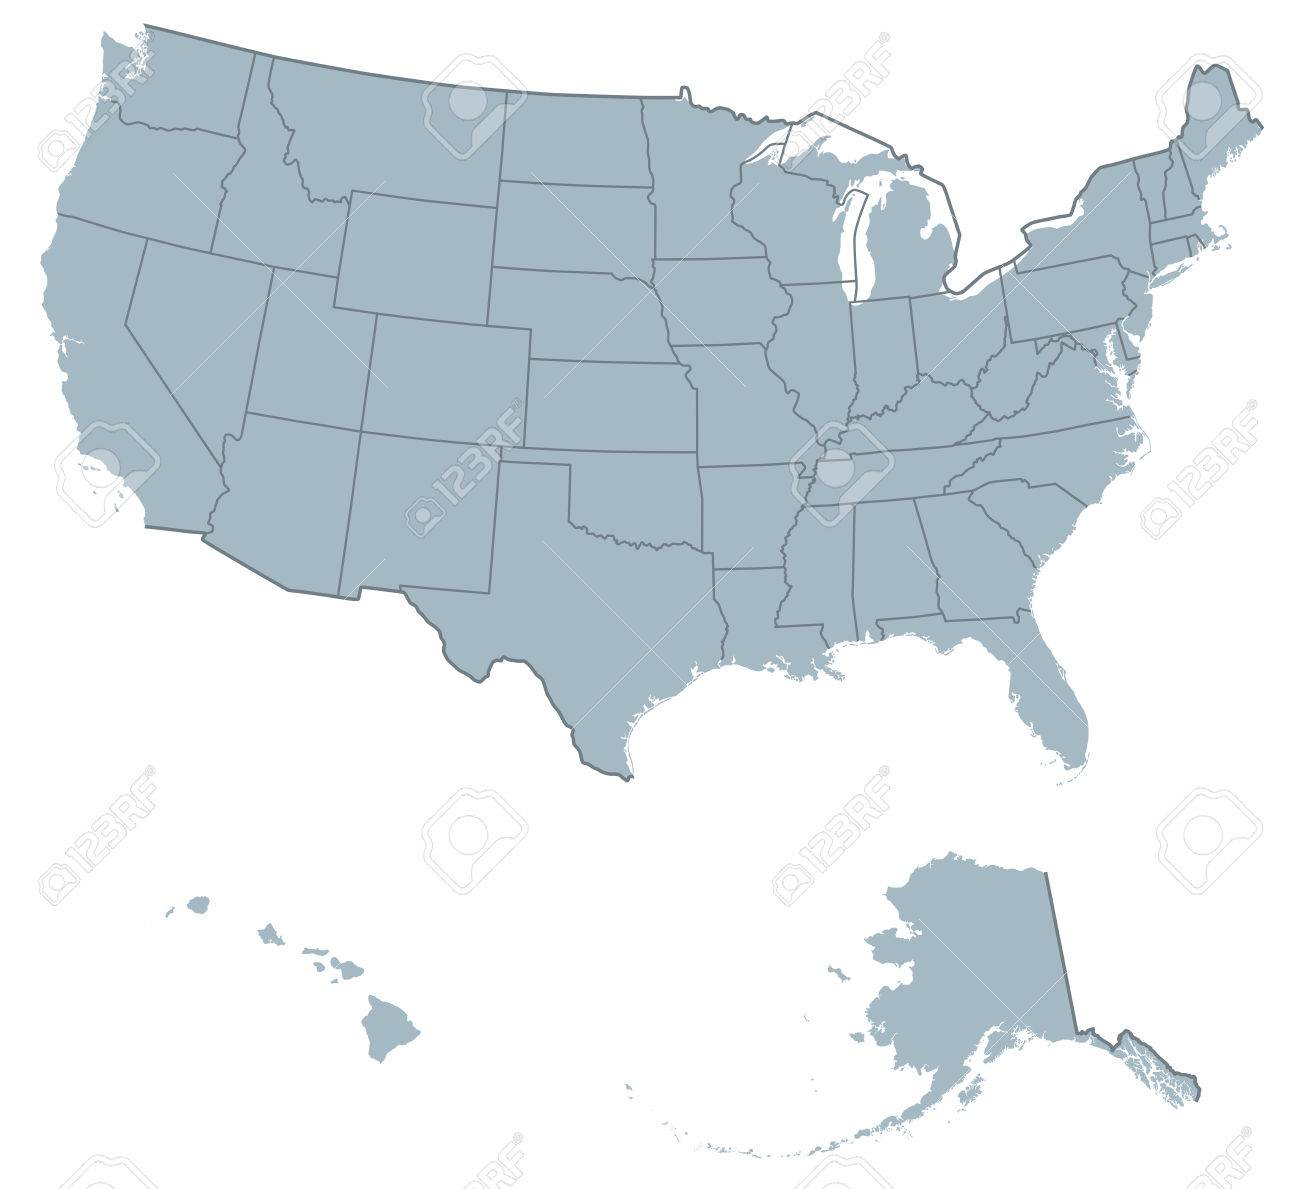 USA United States Of America Political Map The US States